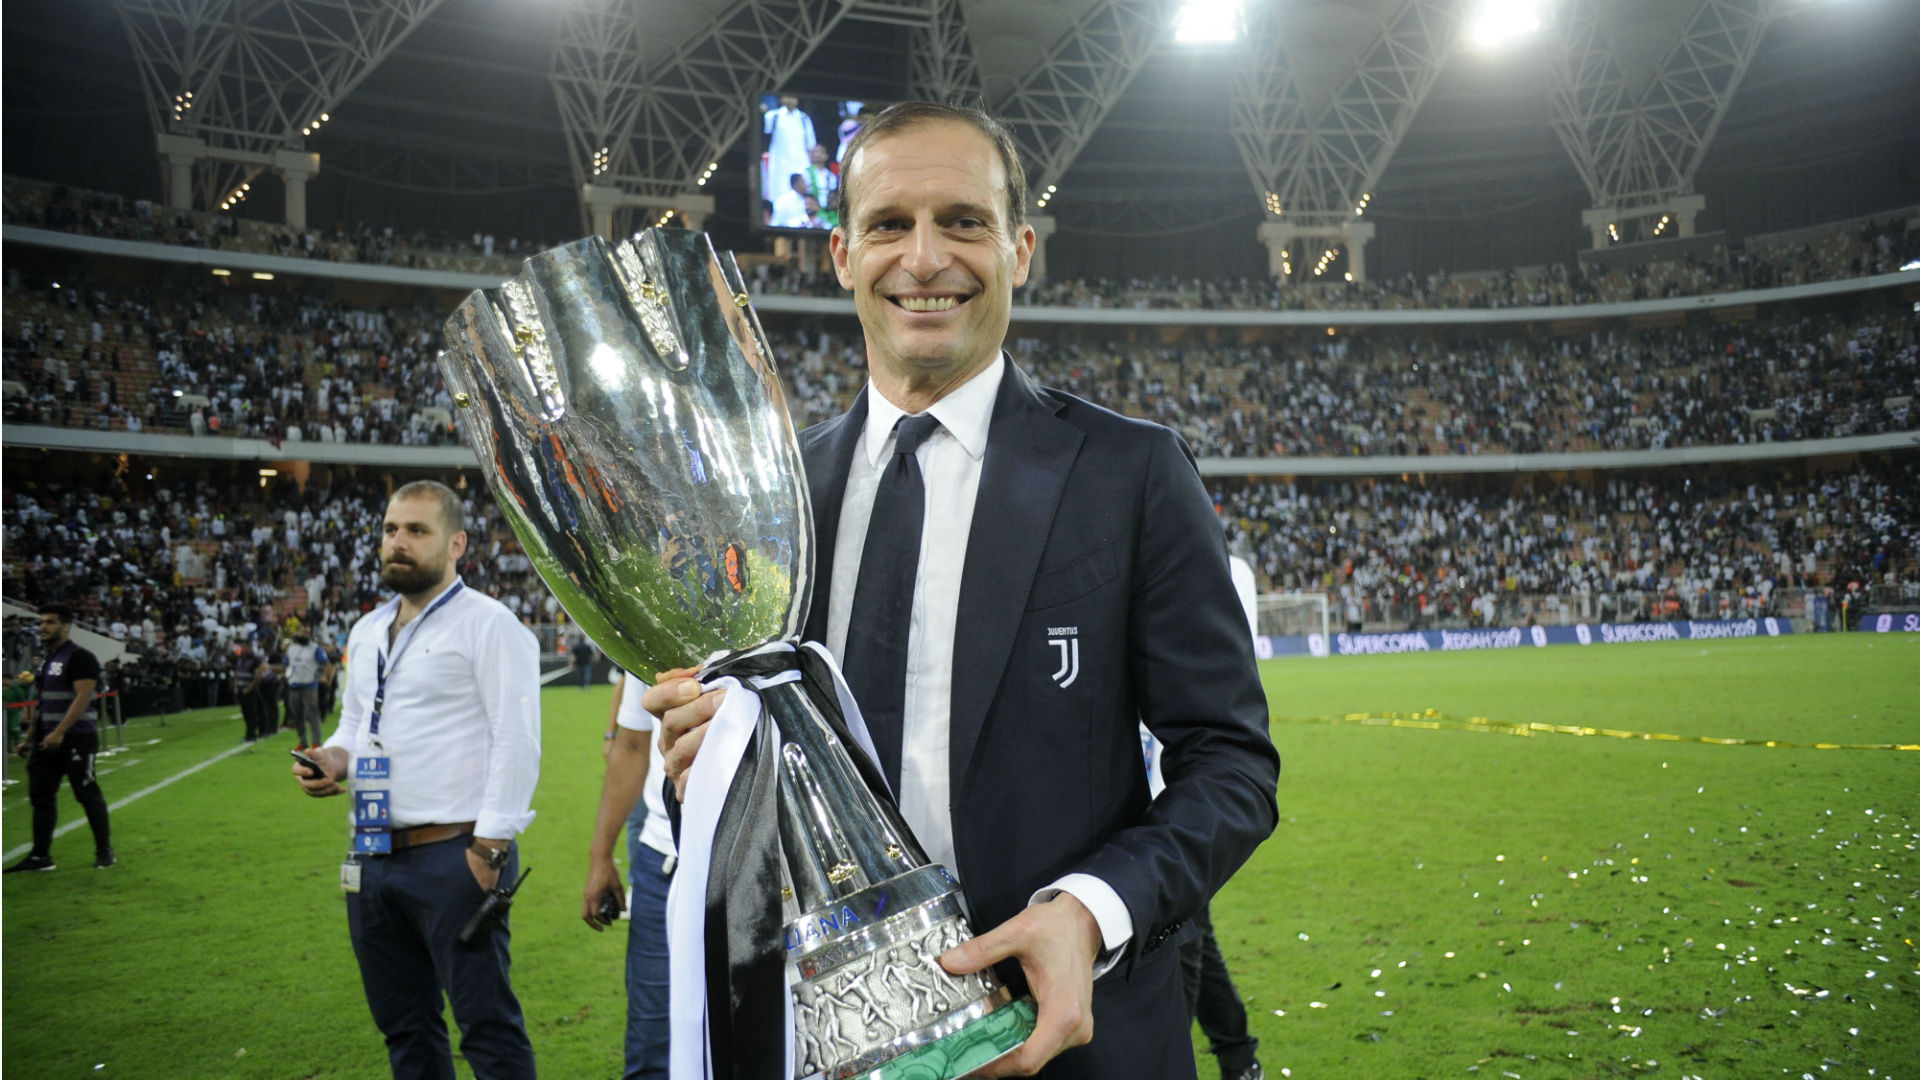 Serie A success, Champions League misery and Ronaldo's arrival – Allegri's highs and lows at Juventus